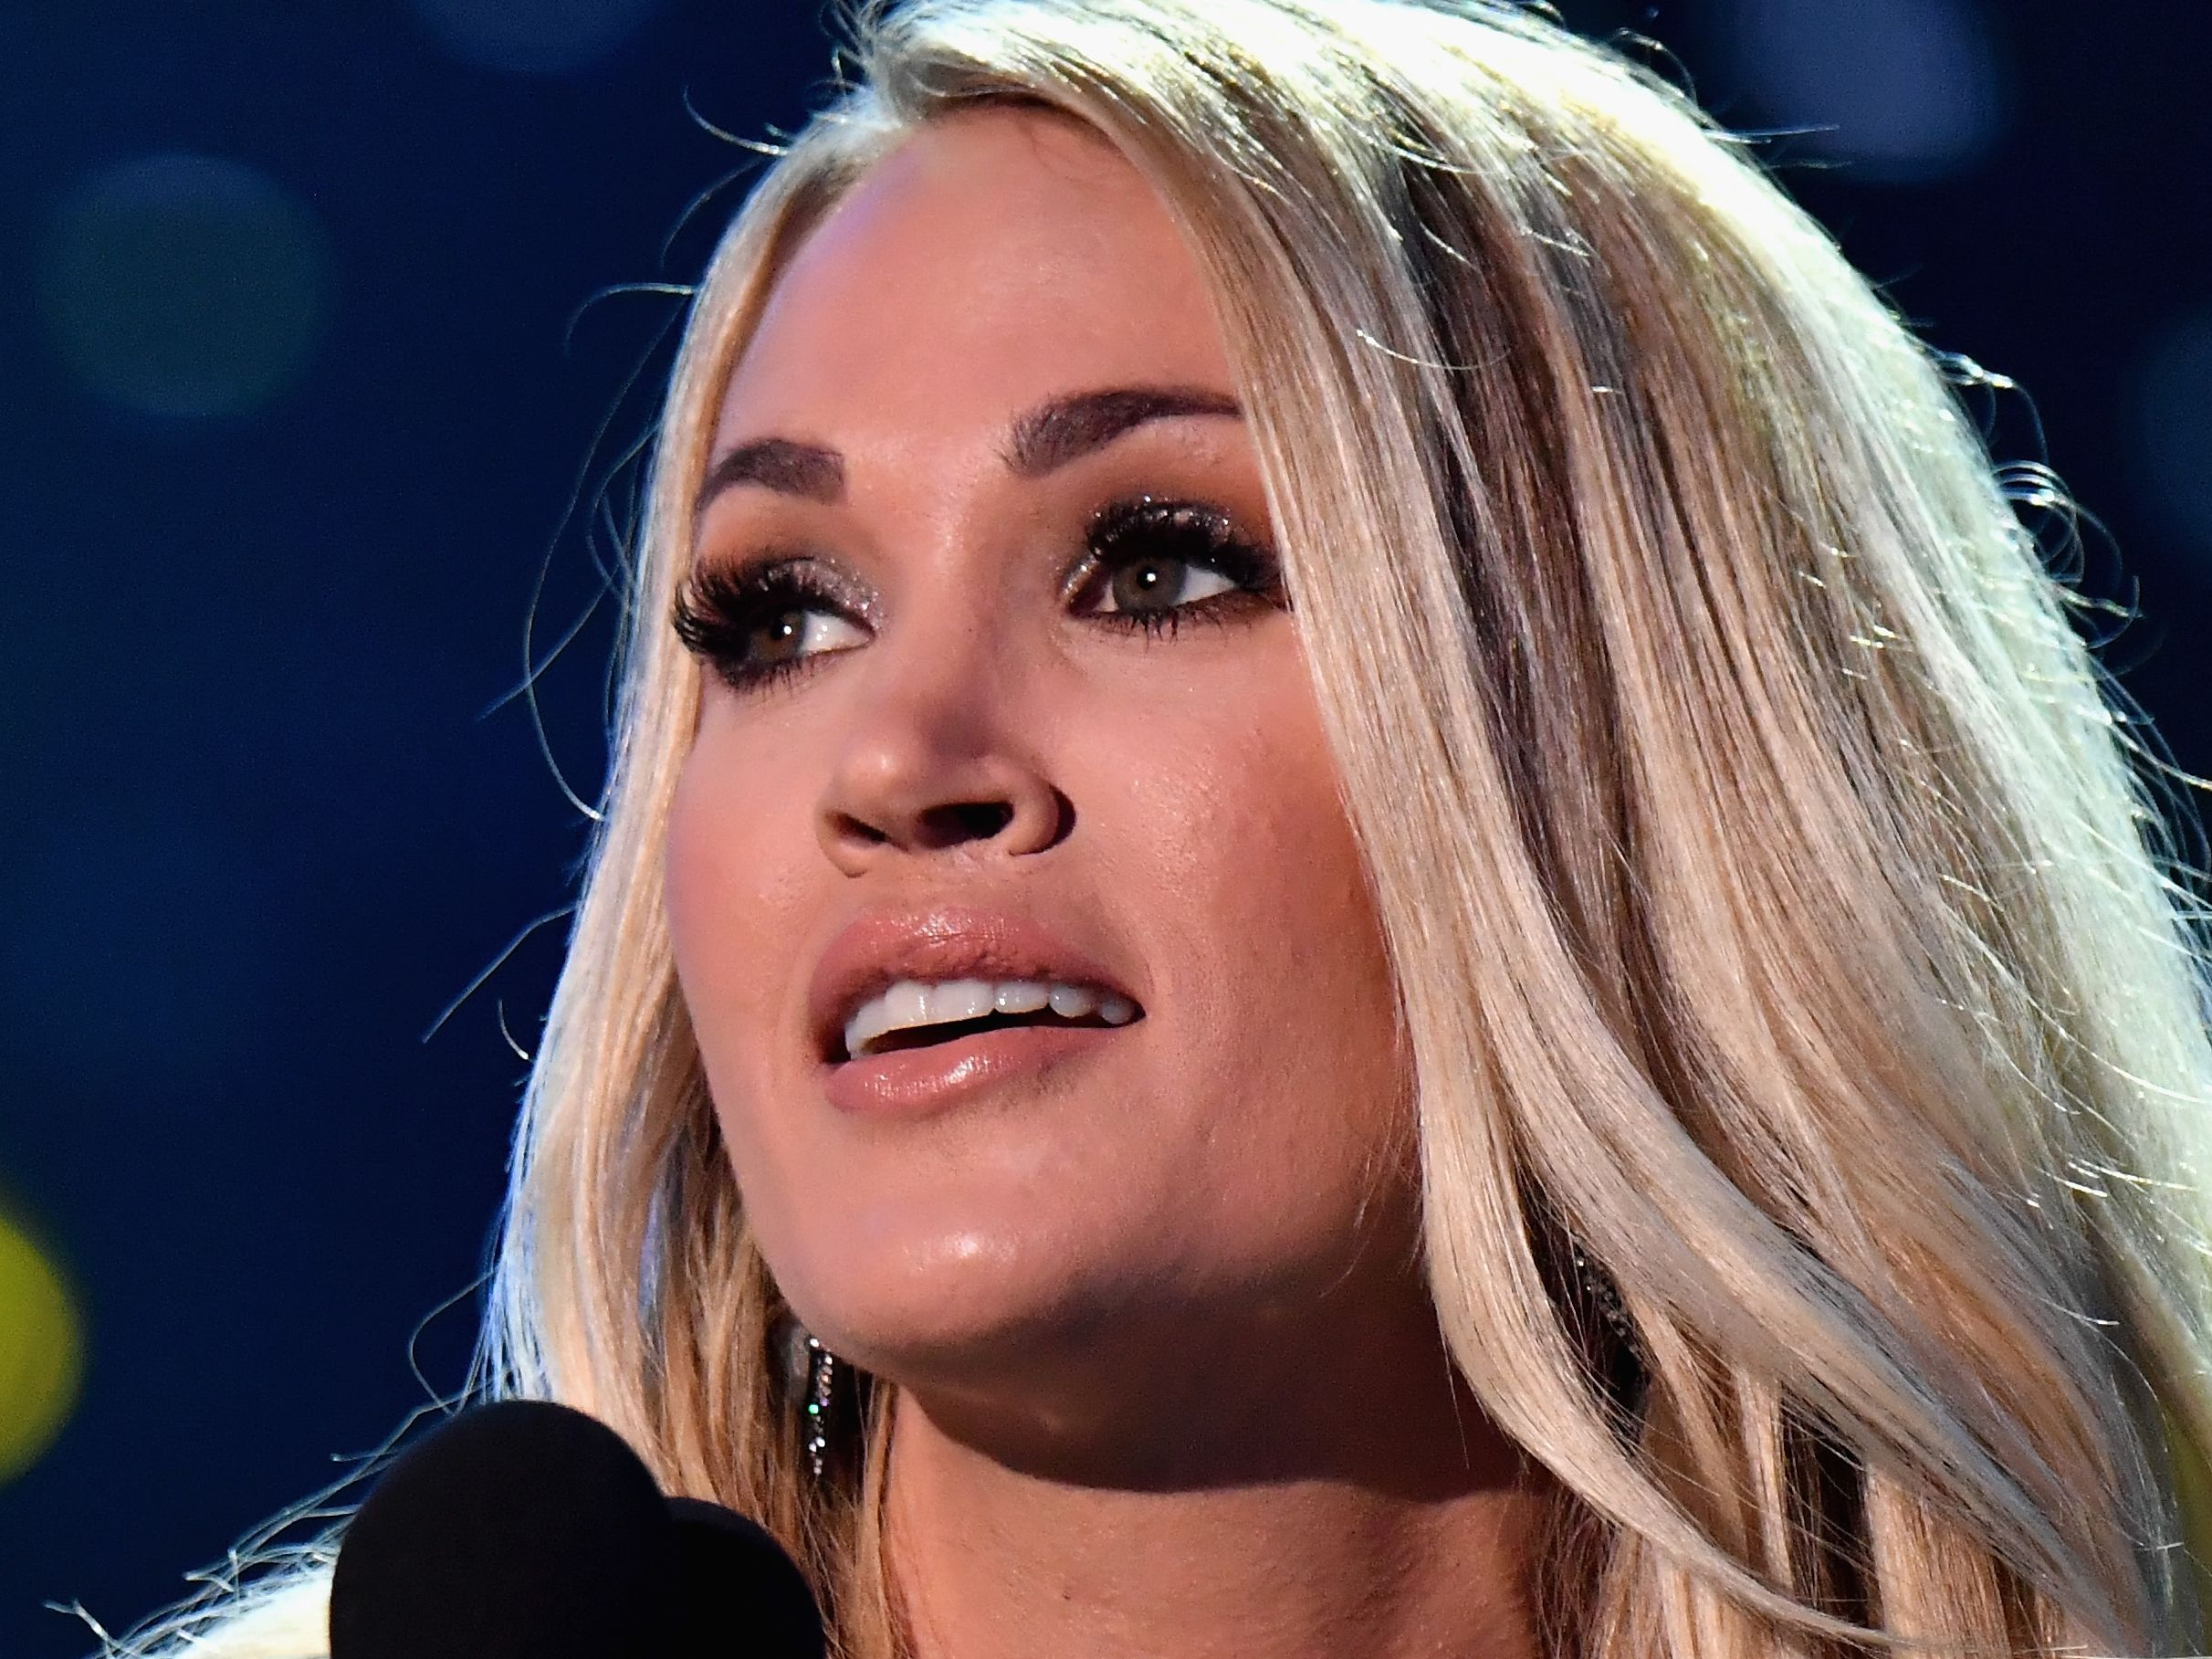 EXCLUSIVE  Carrie Underwood Talks Writing Party Songs for Women   CMT